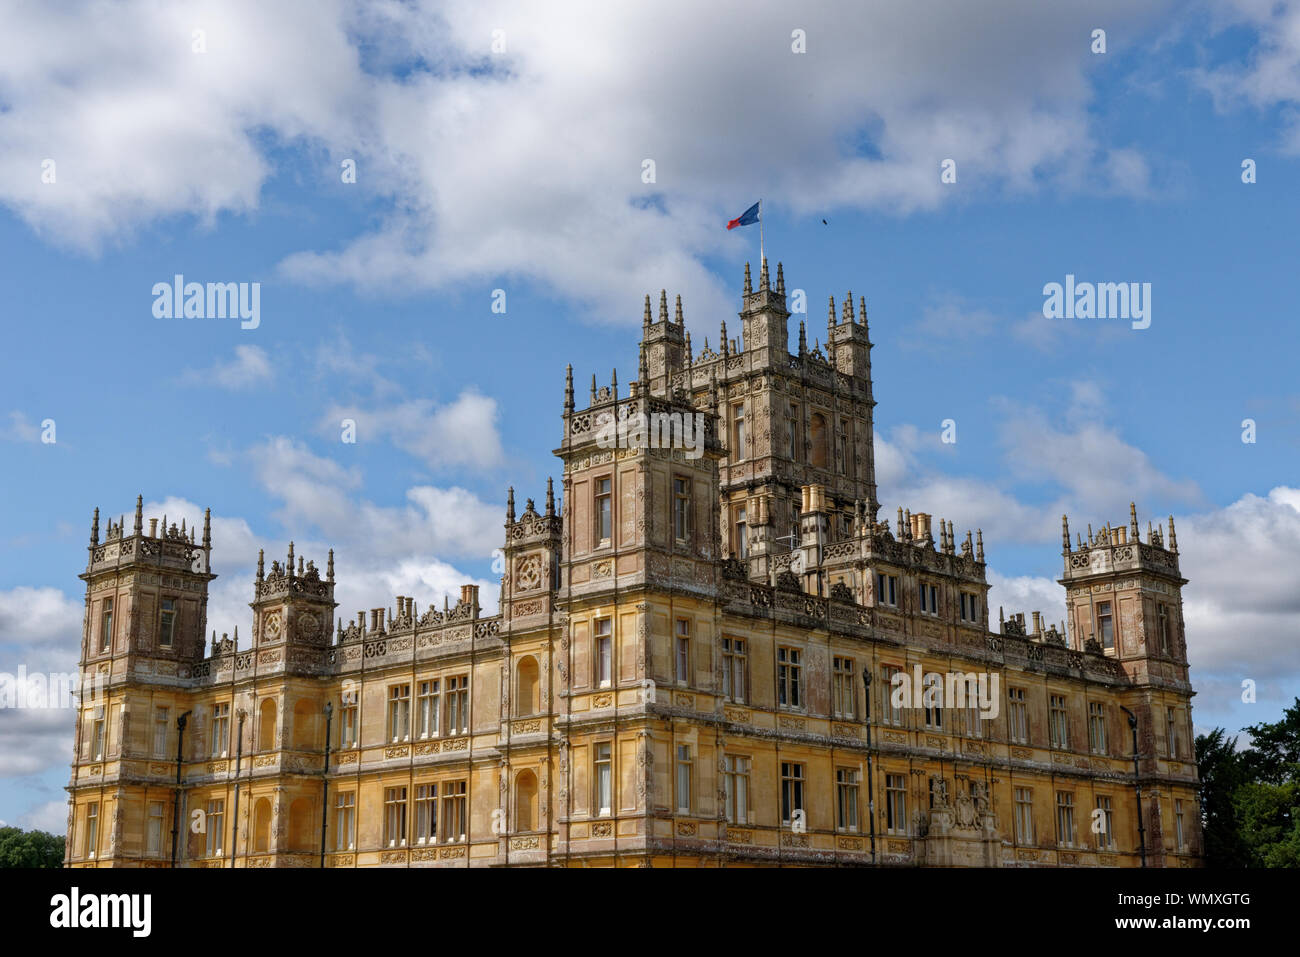 Highclere Castle, home of the Earl and Countess of Carnarvon, and film location of the TV series Downton Abbey, in Berkshire, United Kingdom. Stock Photo